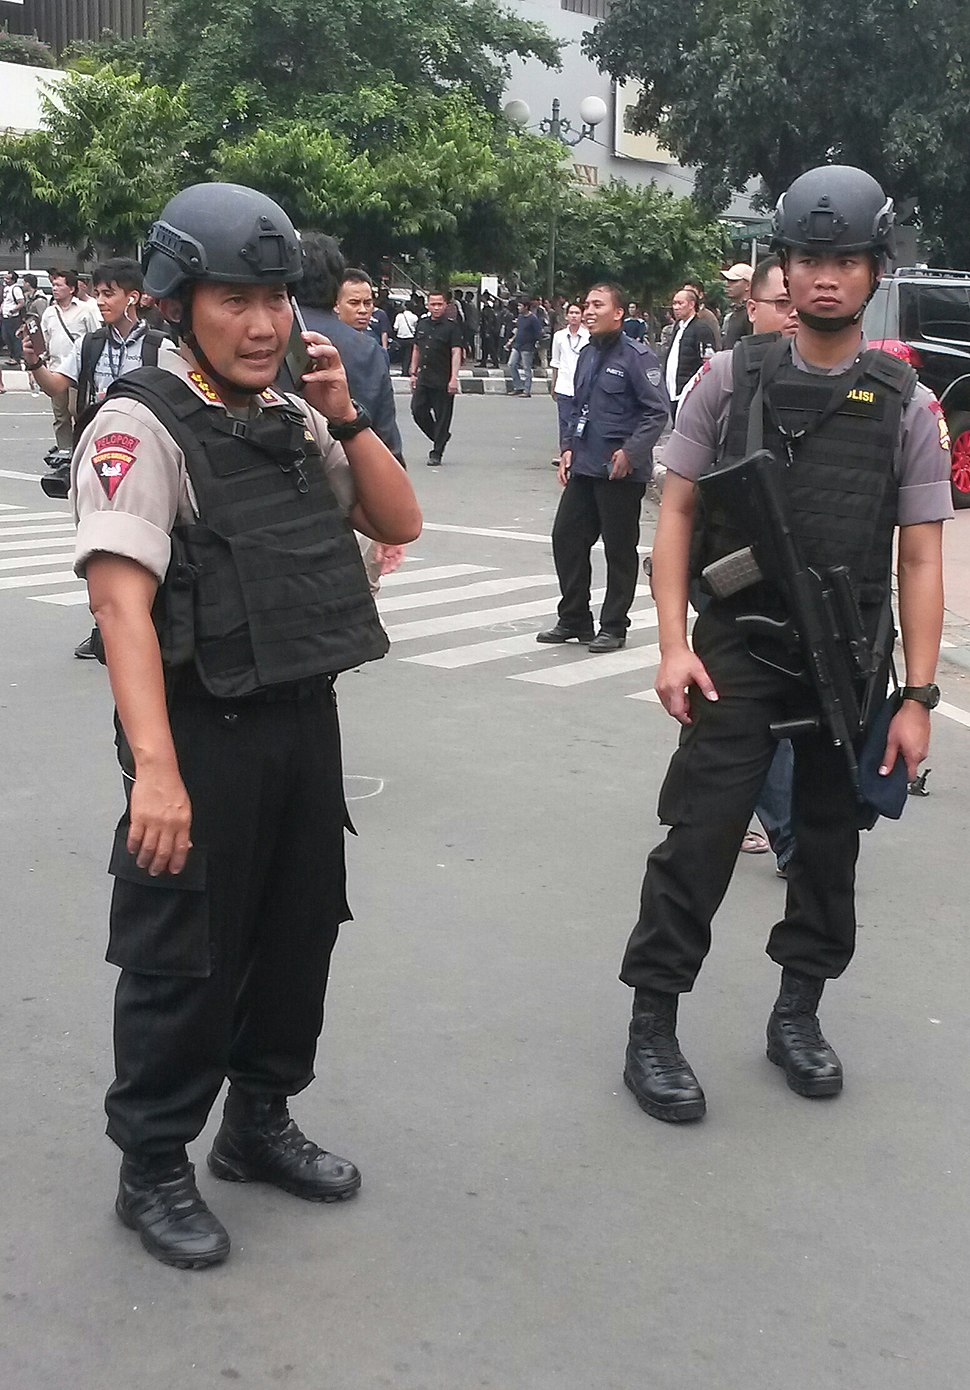 Indonesian BRIMOB police officers